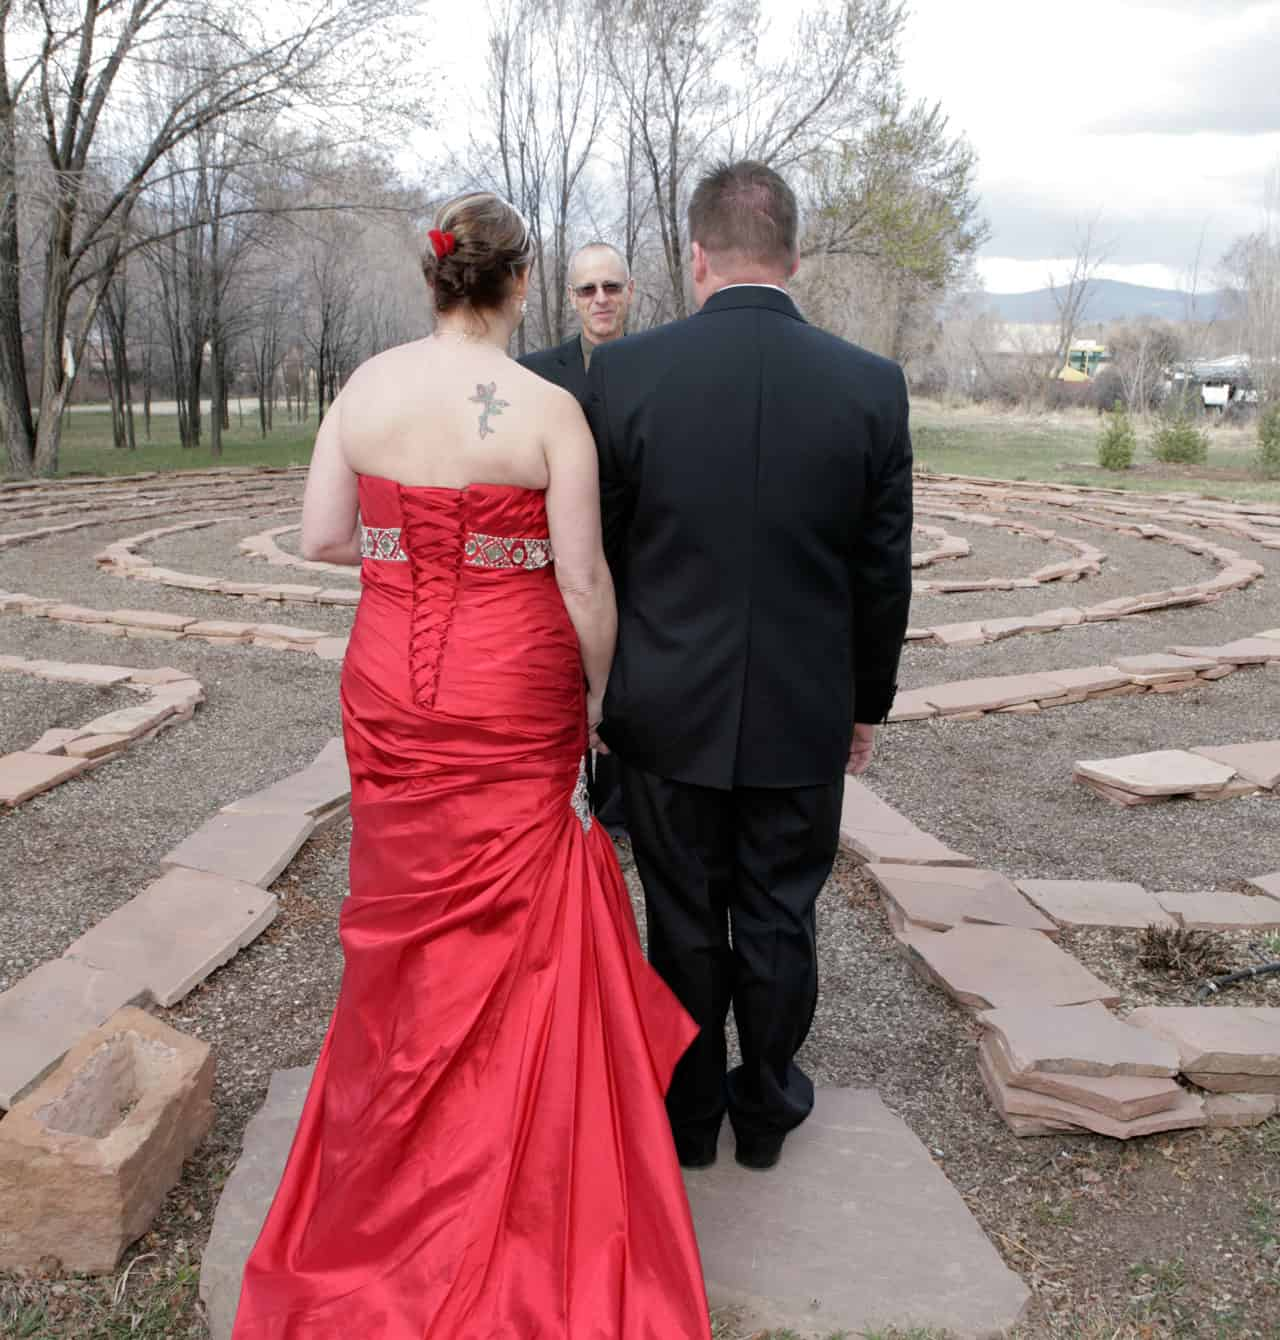 A wedding outdoors where the bride is wearing a red dress for her Christmas wedding.